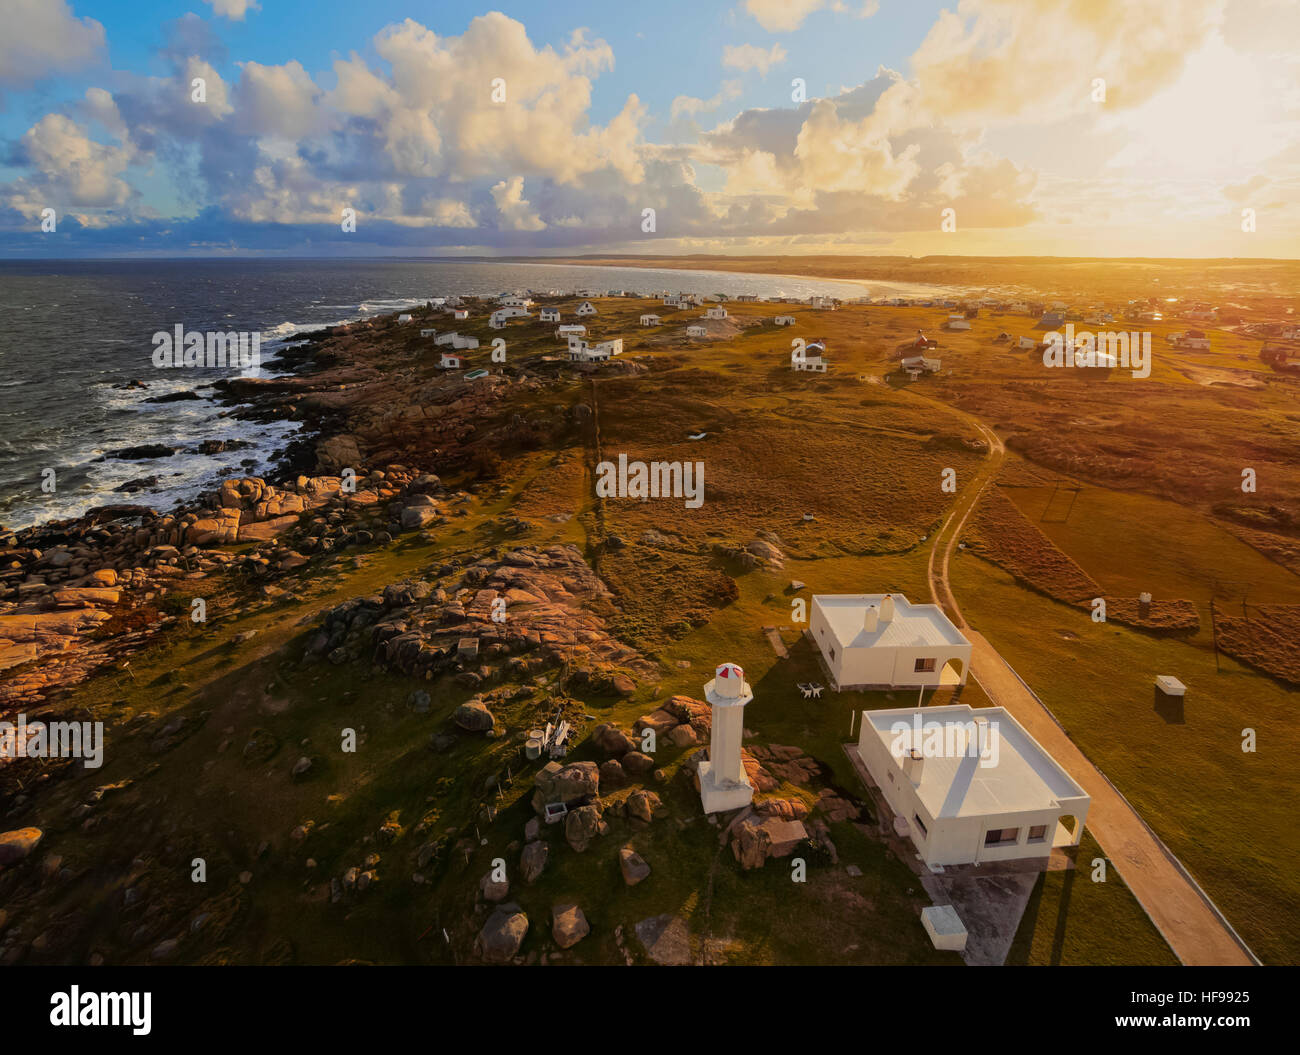 View of Cabo Polonio at sunset, Rocha Department, Uruguay - Stock Image